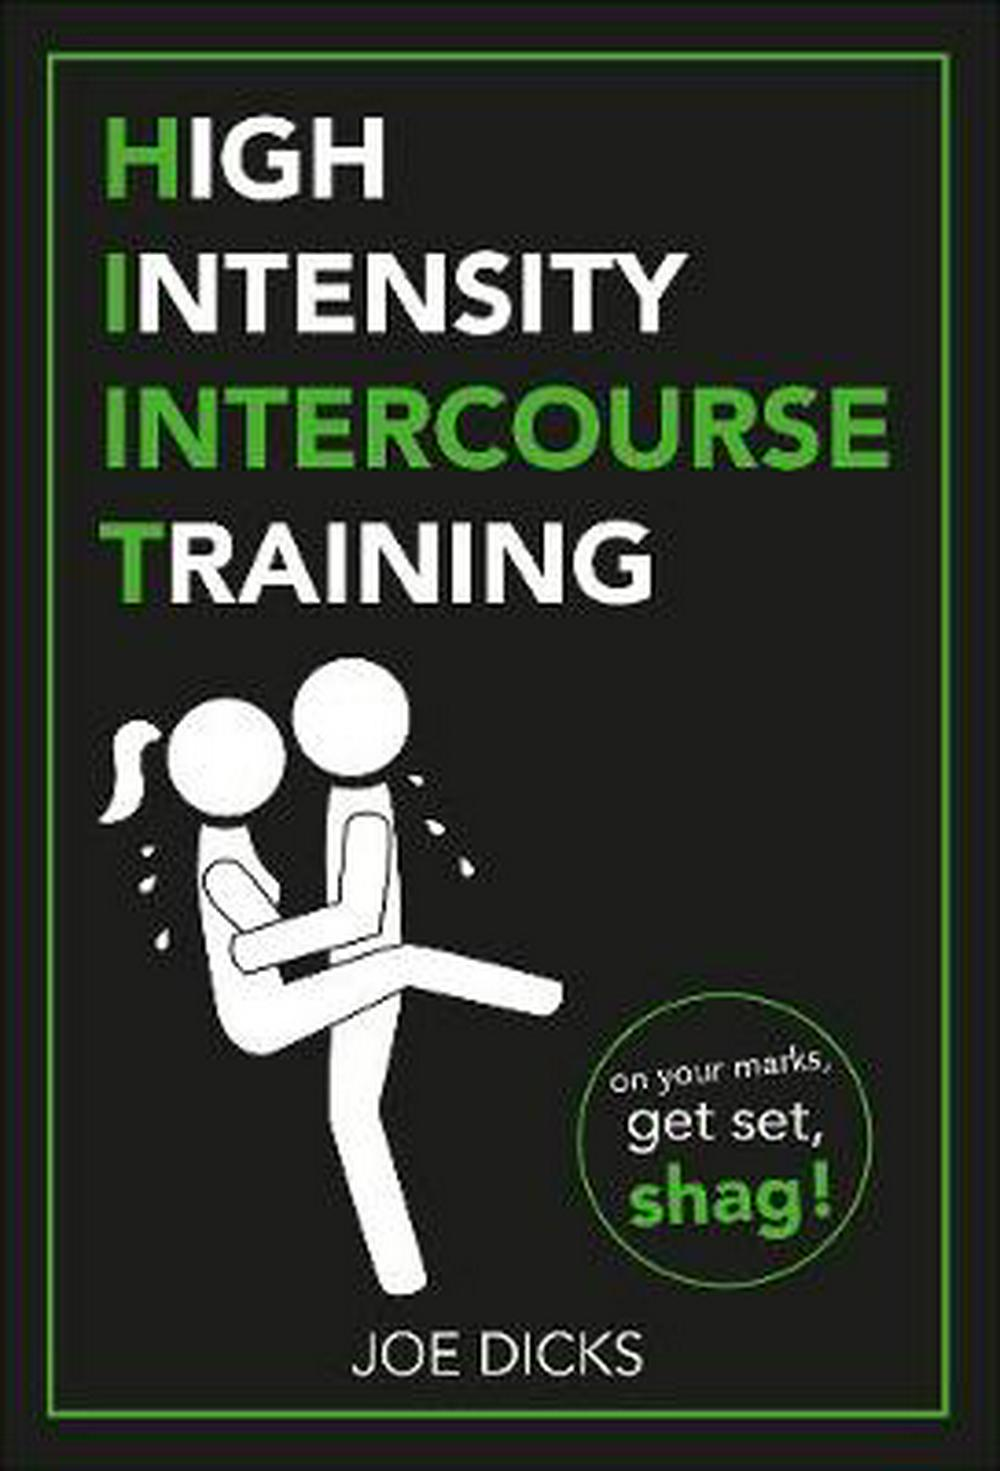 HIIT: High Intensity Intercourse Training